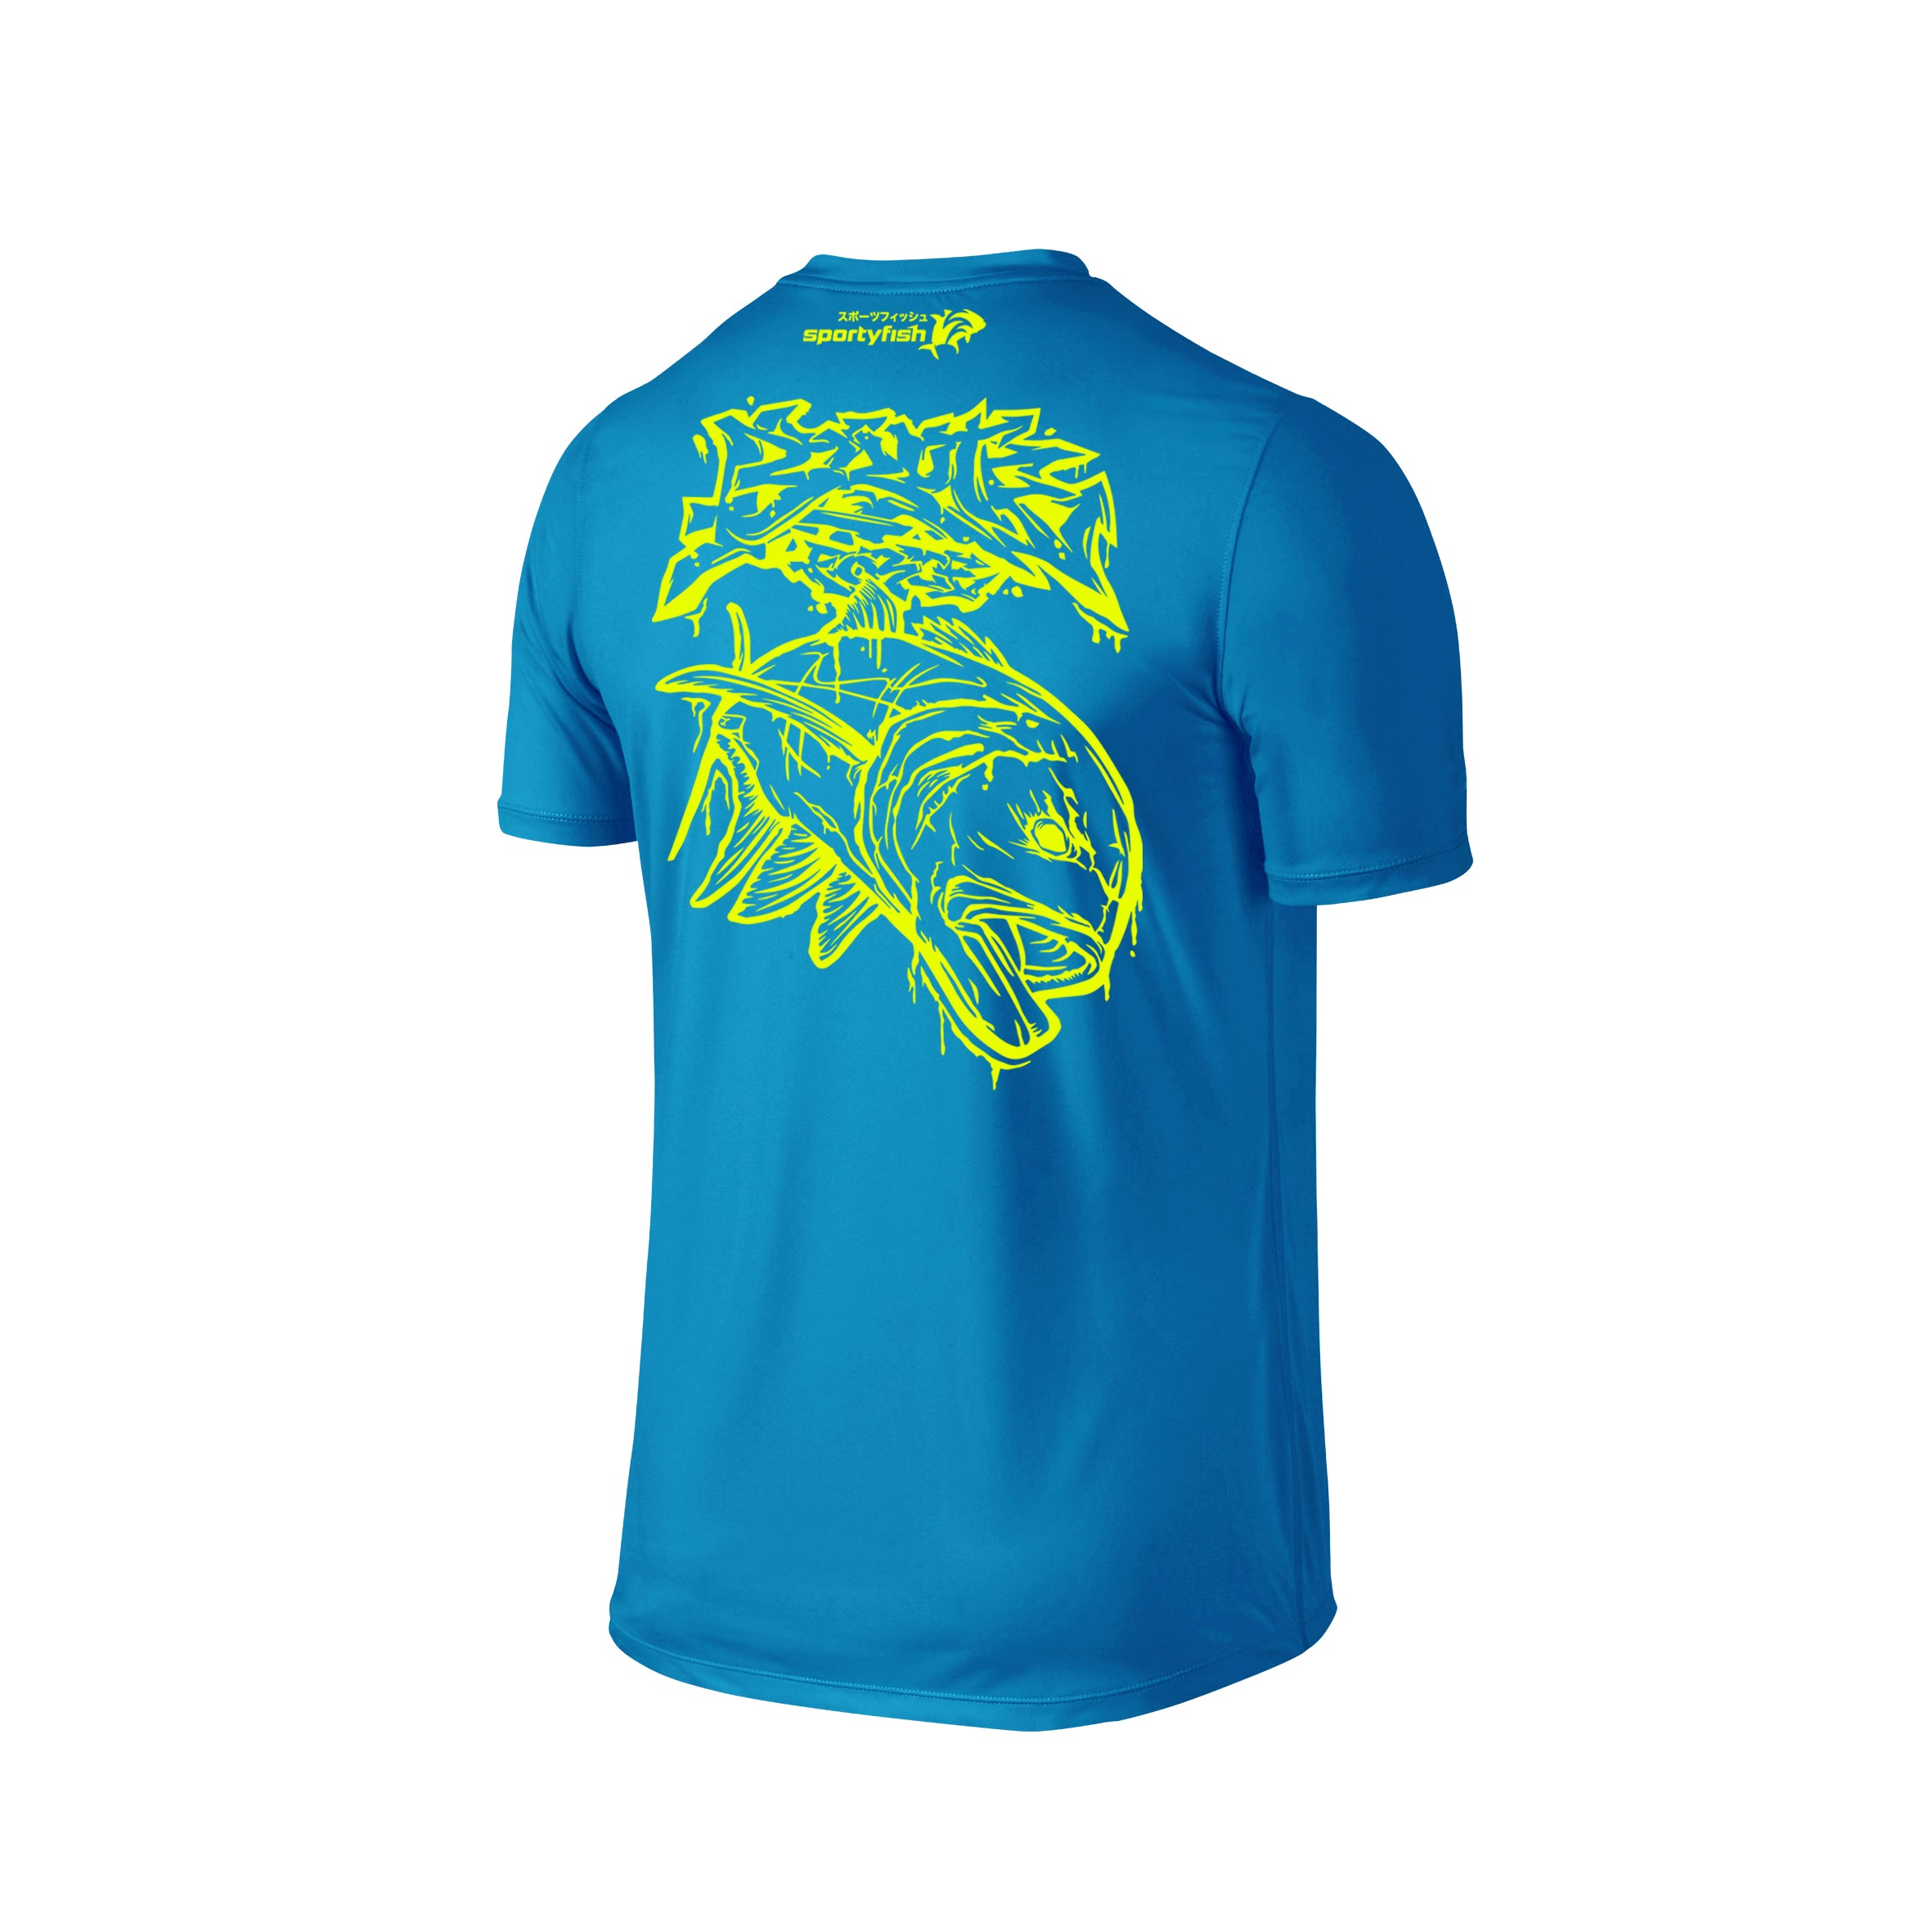 Wildstyle Graffiti Series Turquoise T-shirt(back view)Neon Yellow: Giant Trevally